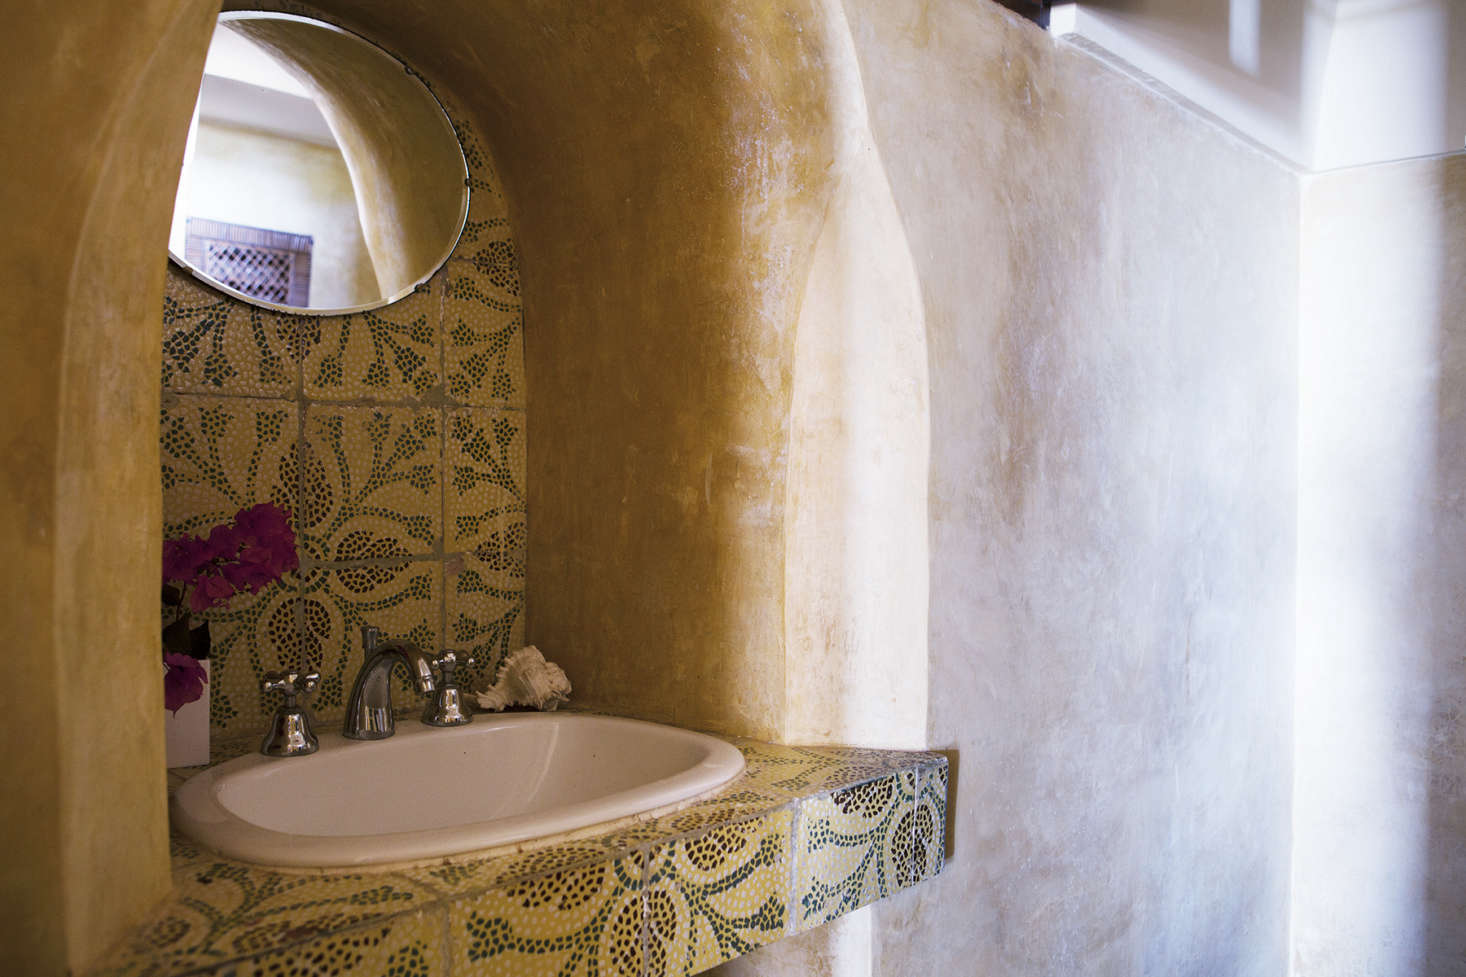 The beautifully tiled sink in the bathroom.